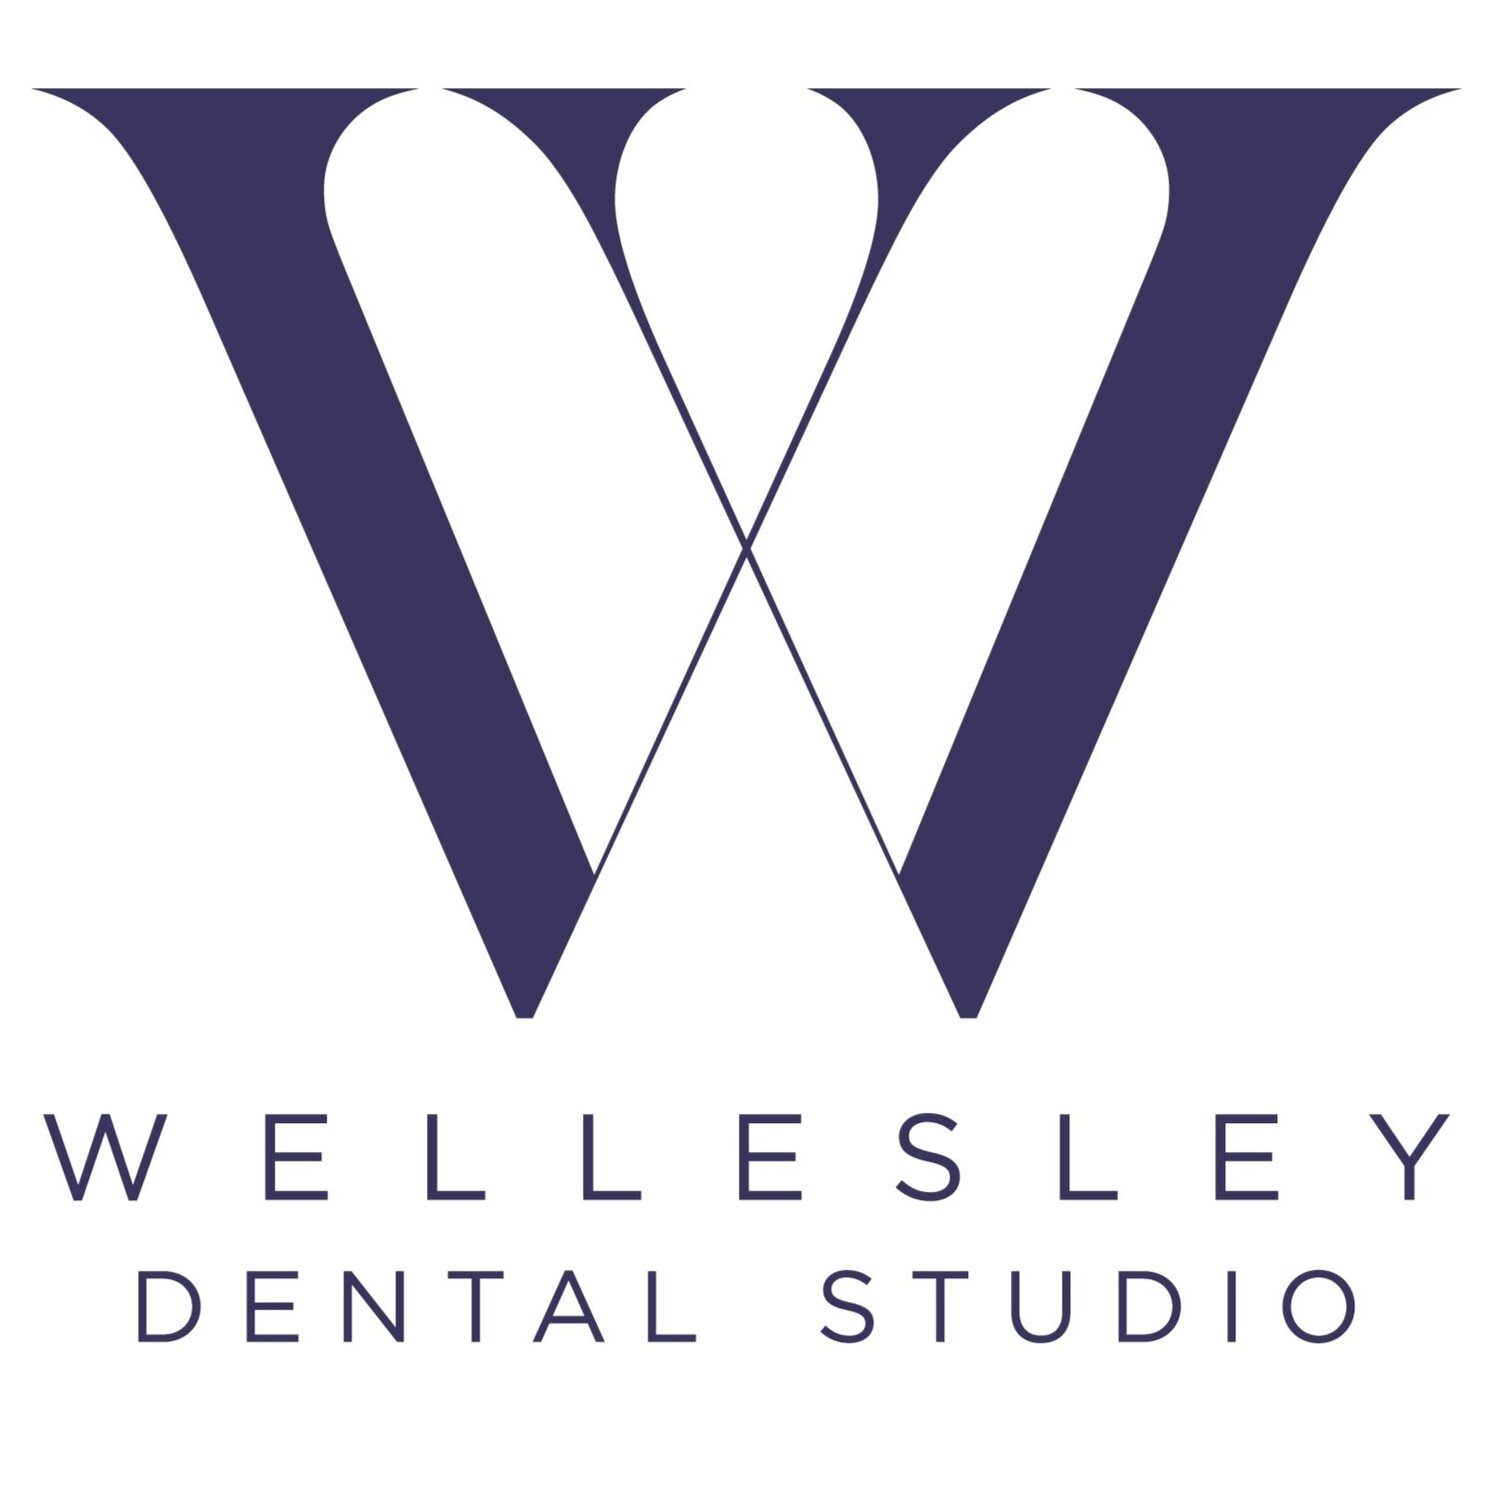 Wellesley Dental Studio